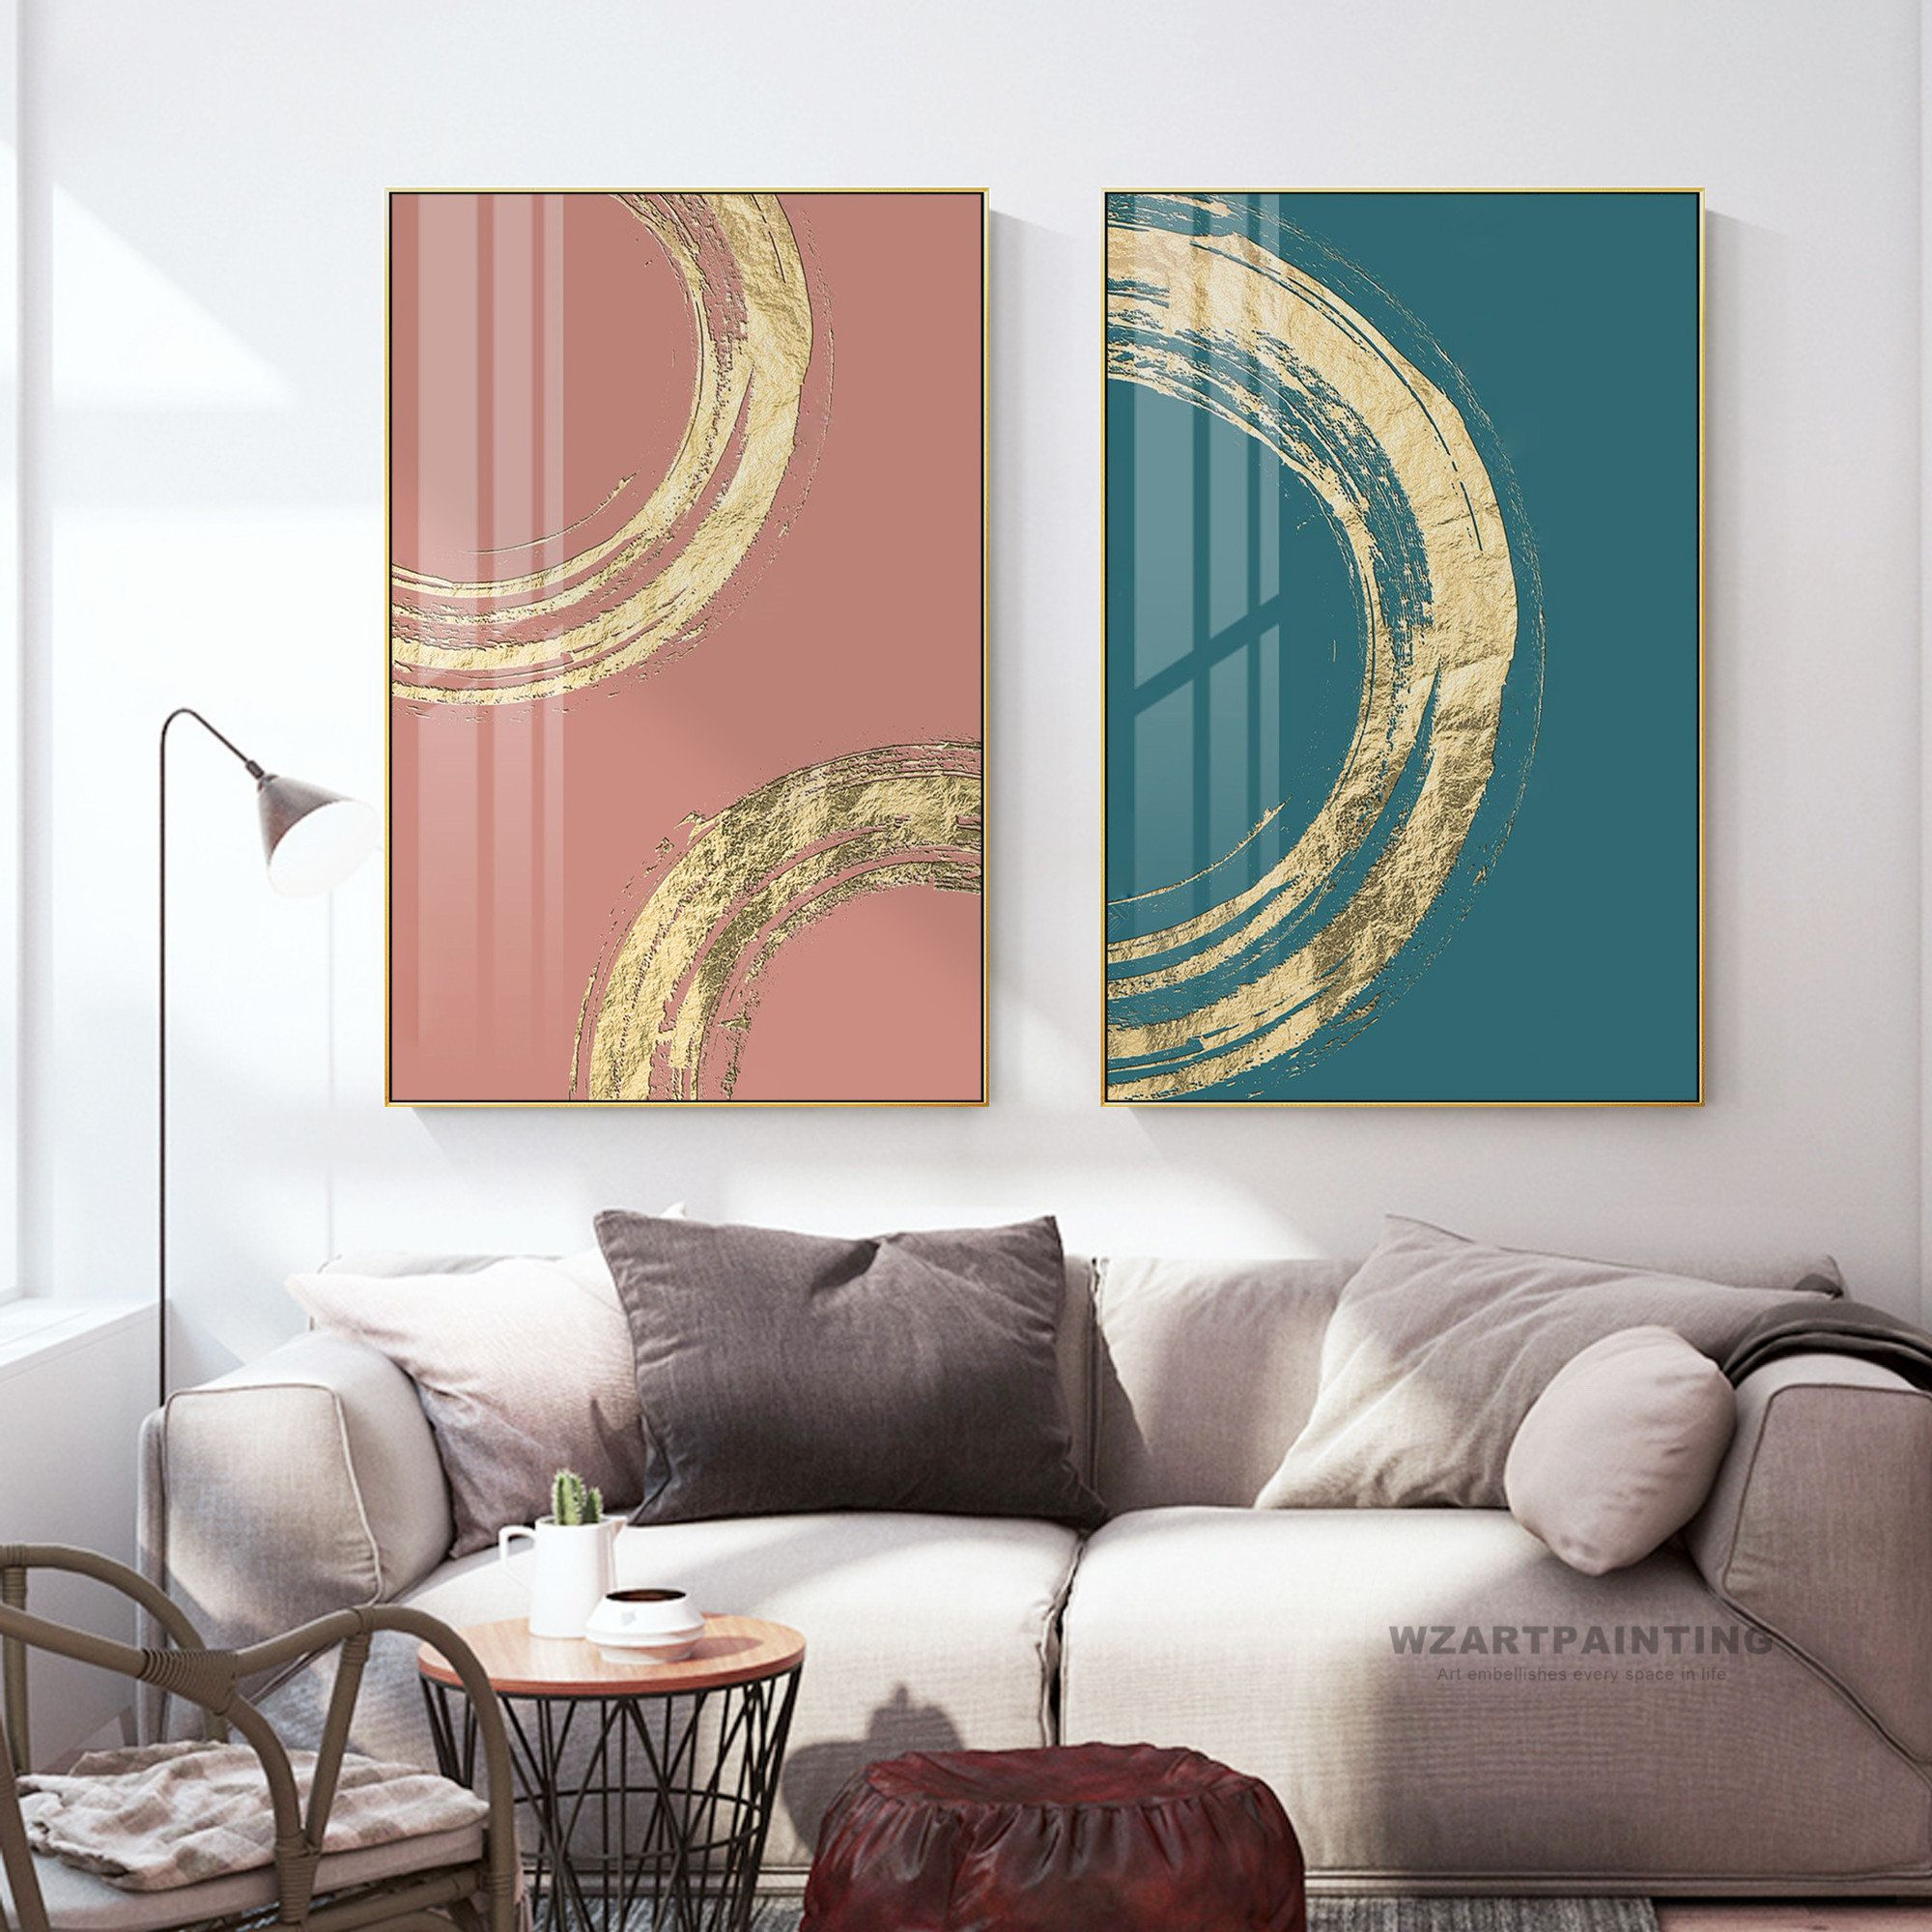 Framed Wall Art Set Of 2 Prints Abstract Gold Blue Pink Print Etsy Framed Wall Art Sets Wall Art Sets Wall Art Prints